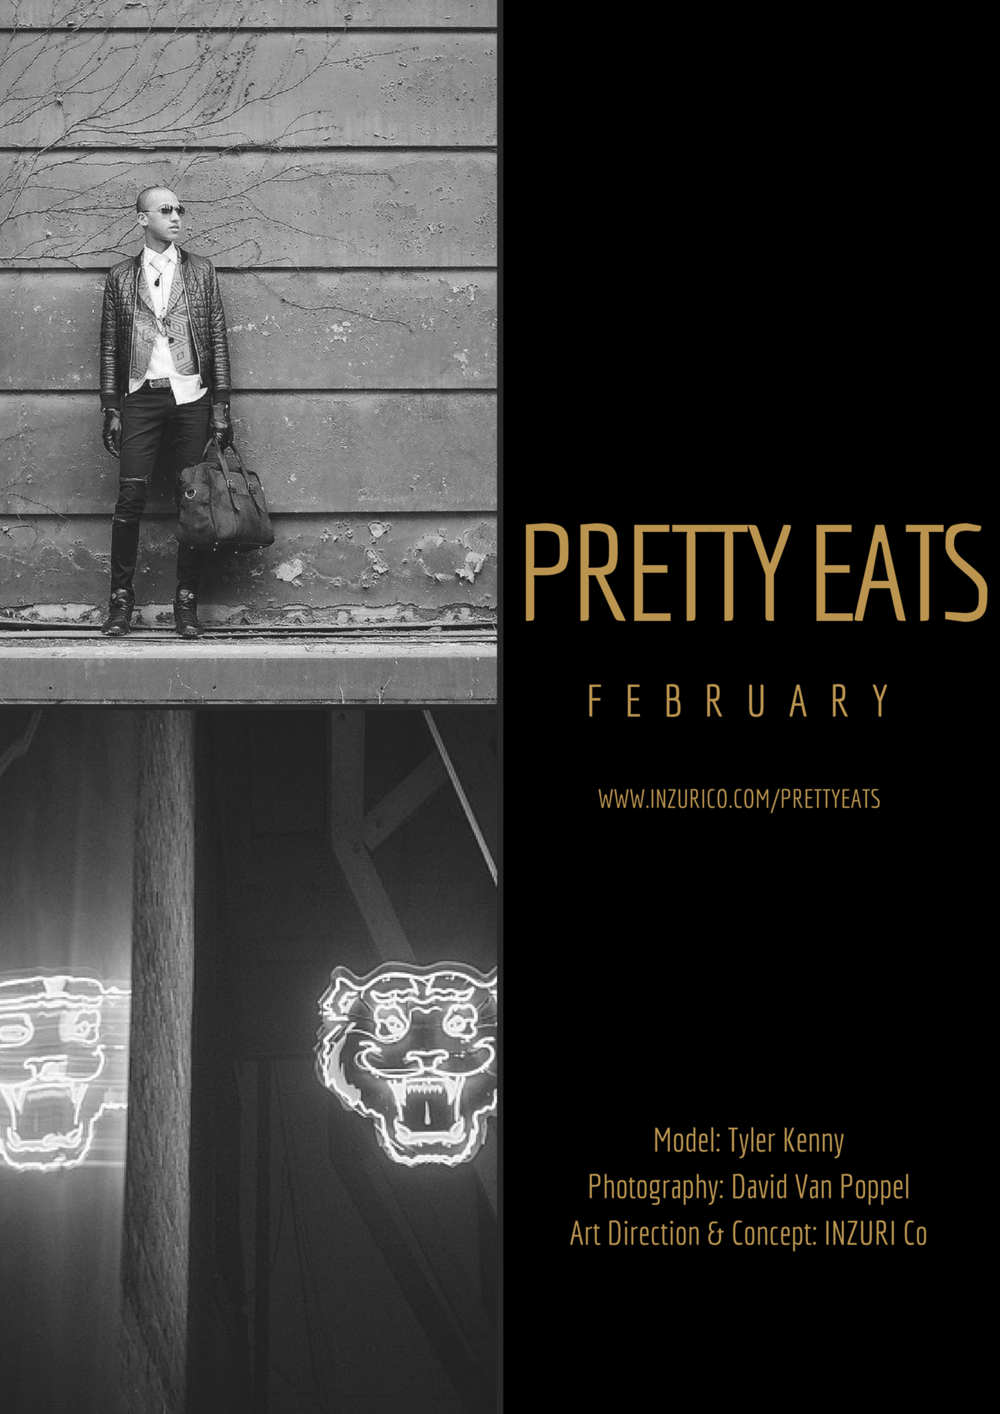 PRETTY EATS (1).png